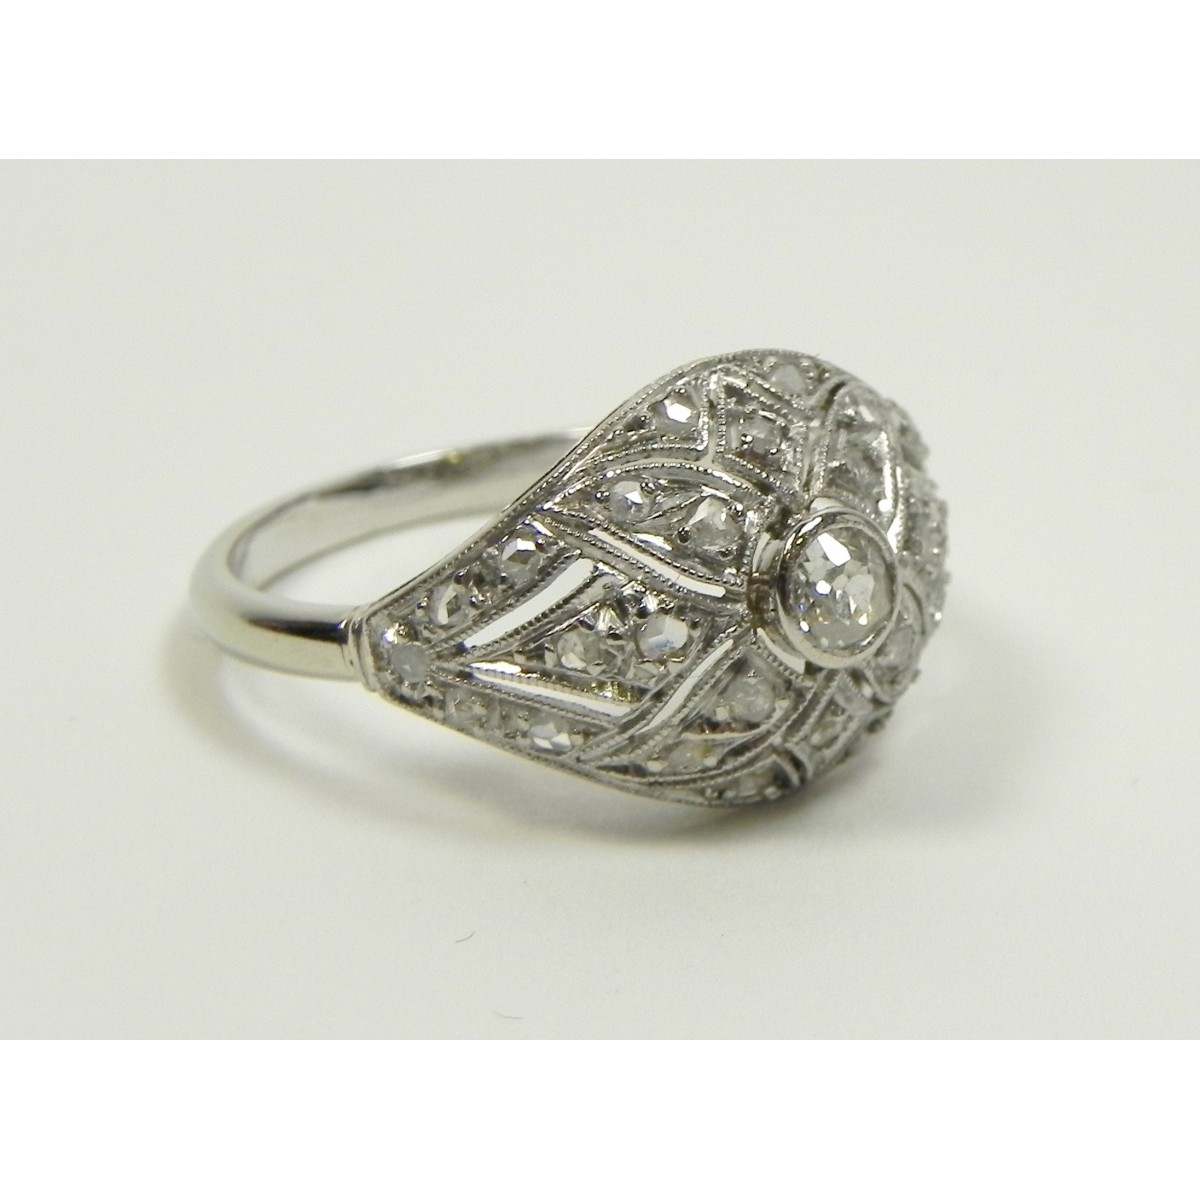 Assez Rare bague art déco or platine et diamants - Muse & Or EQ55